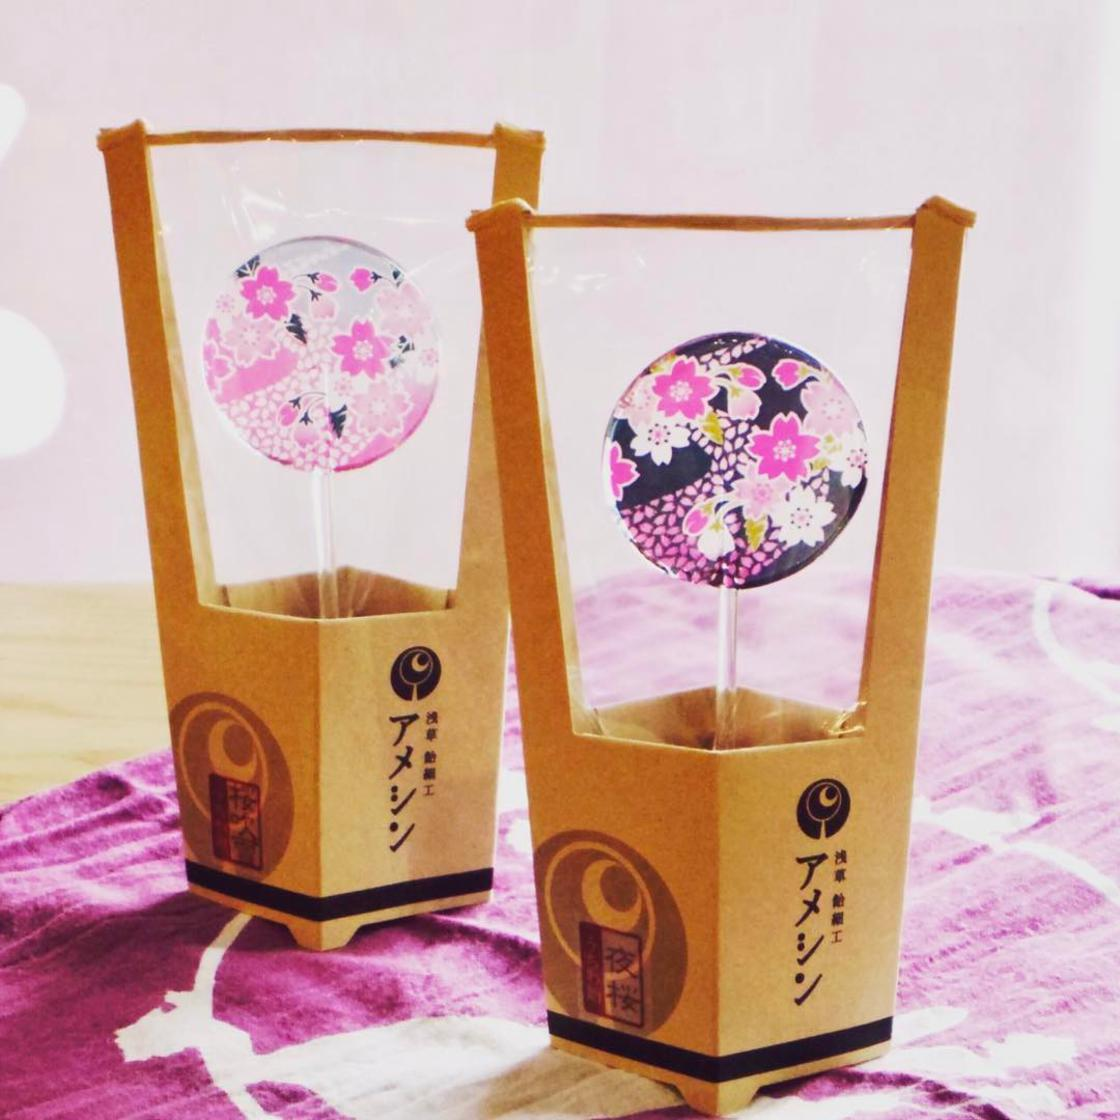 These Japanese lollipops are impressive works of art